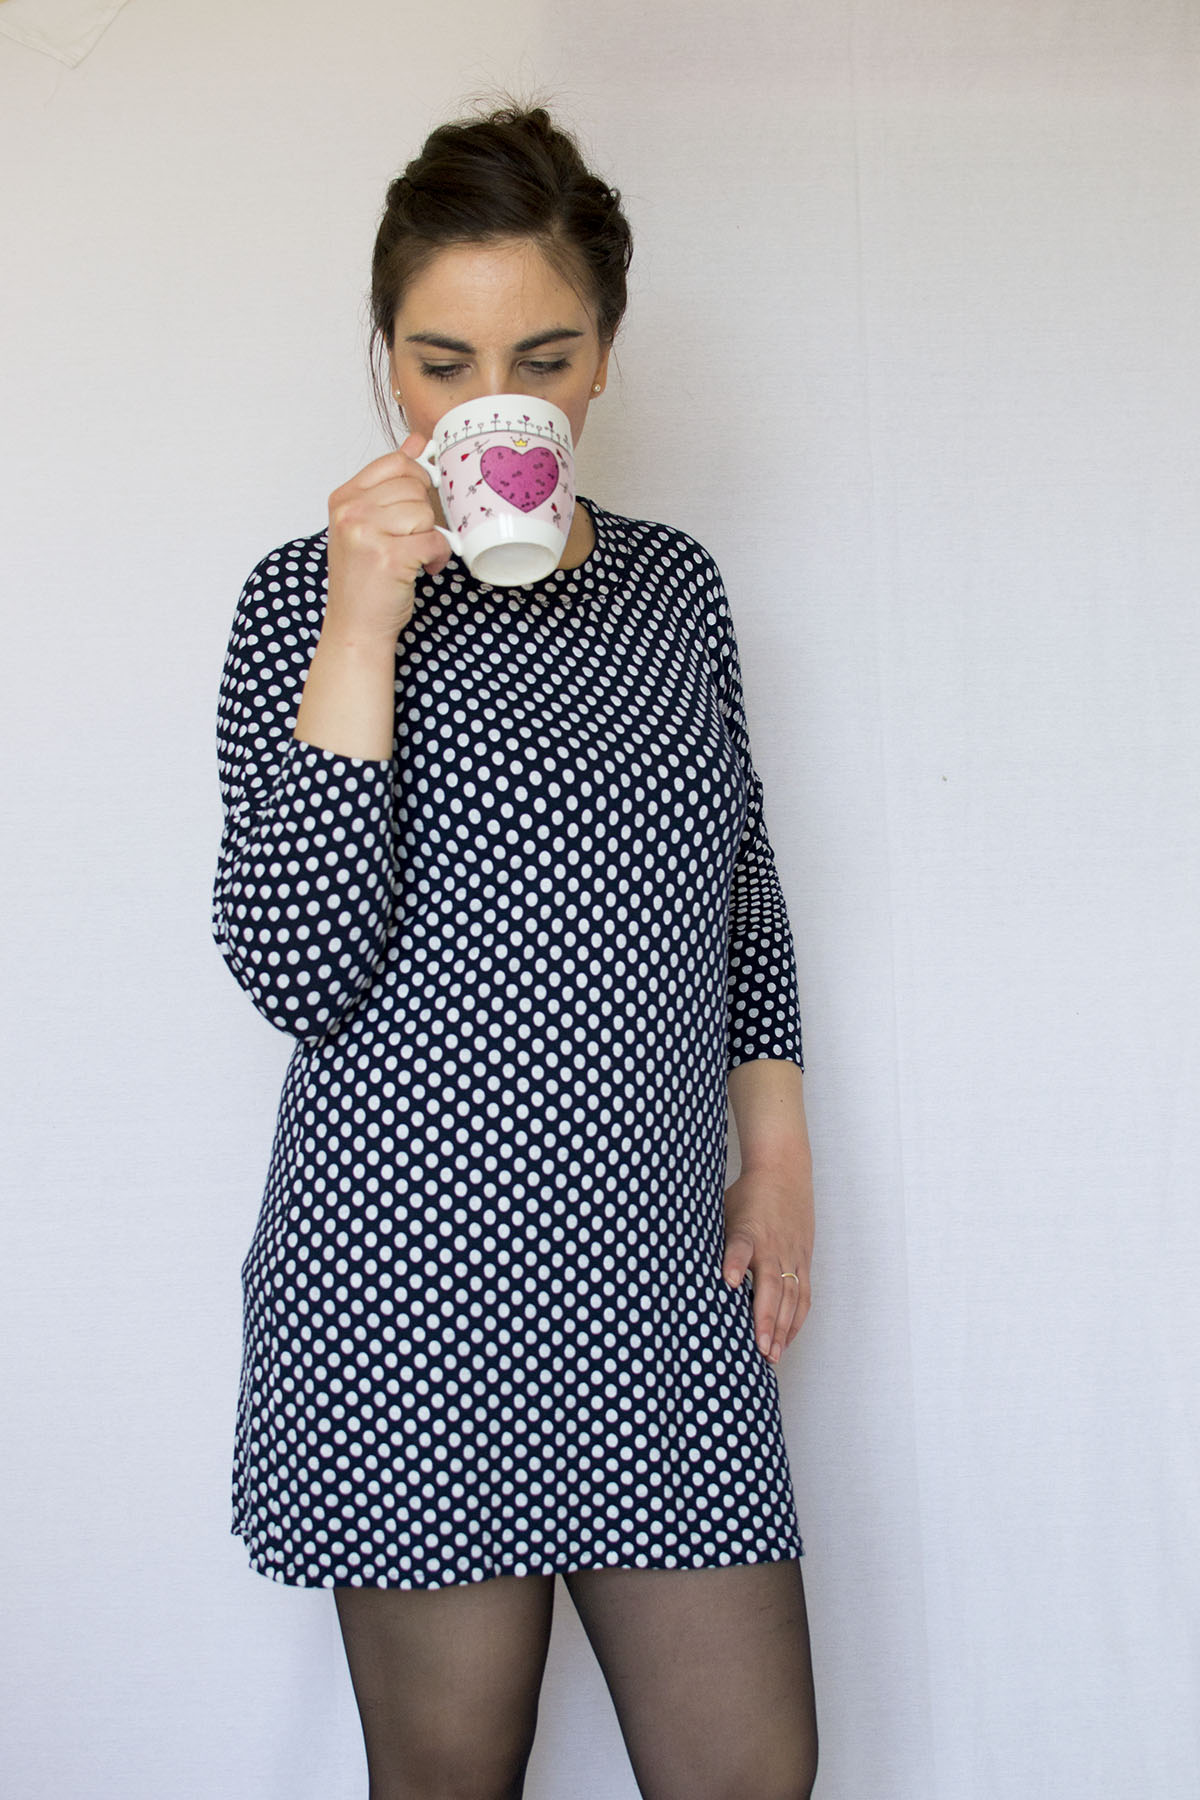 The Molly dresses: polka dots and black